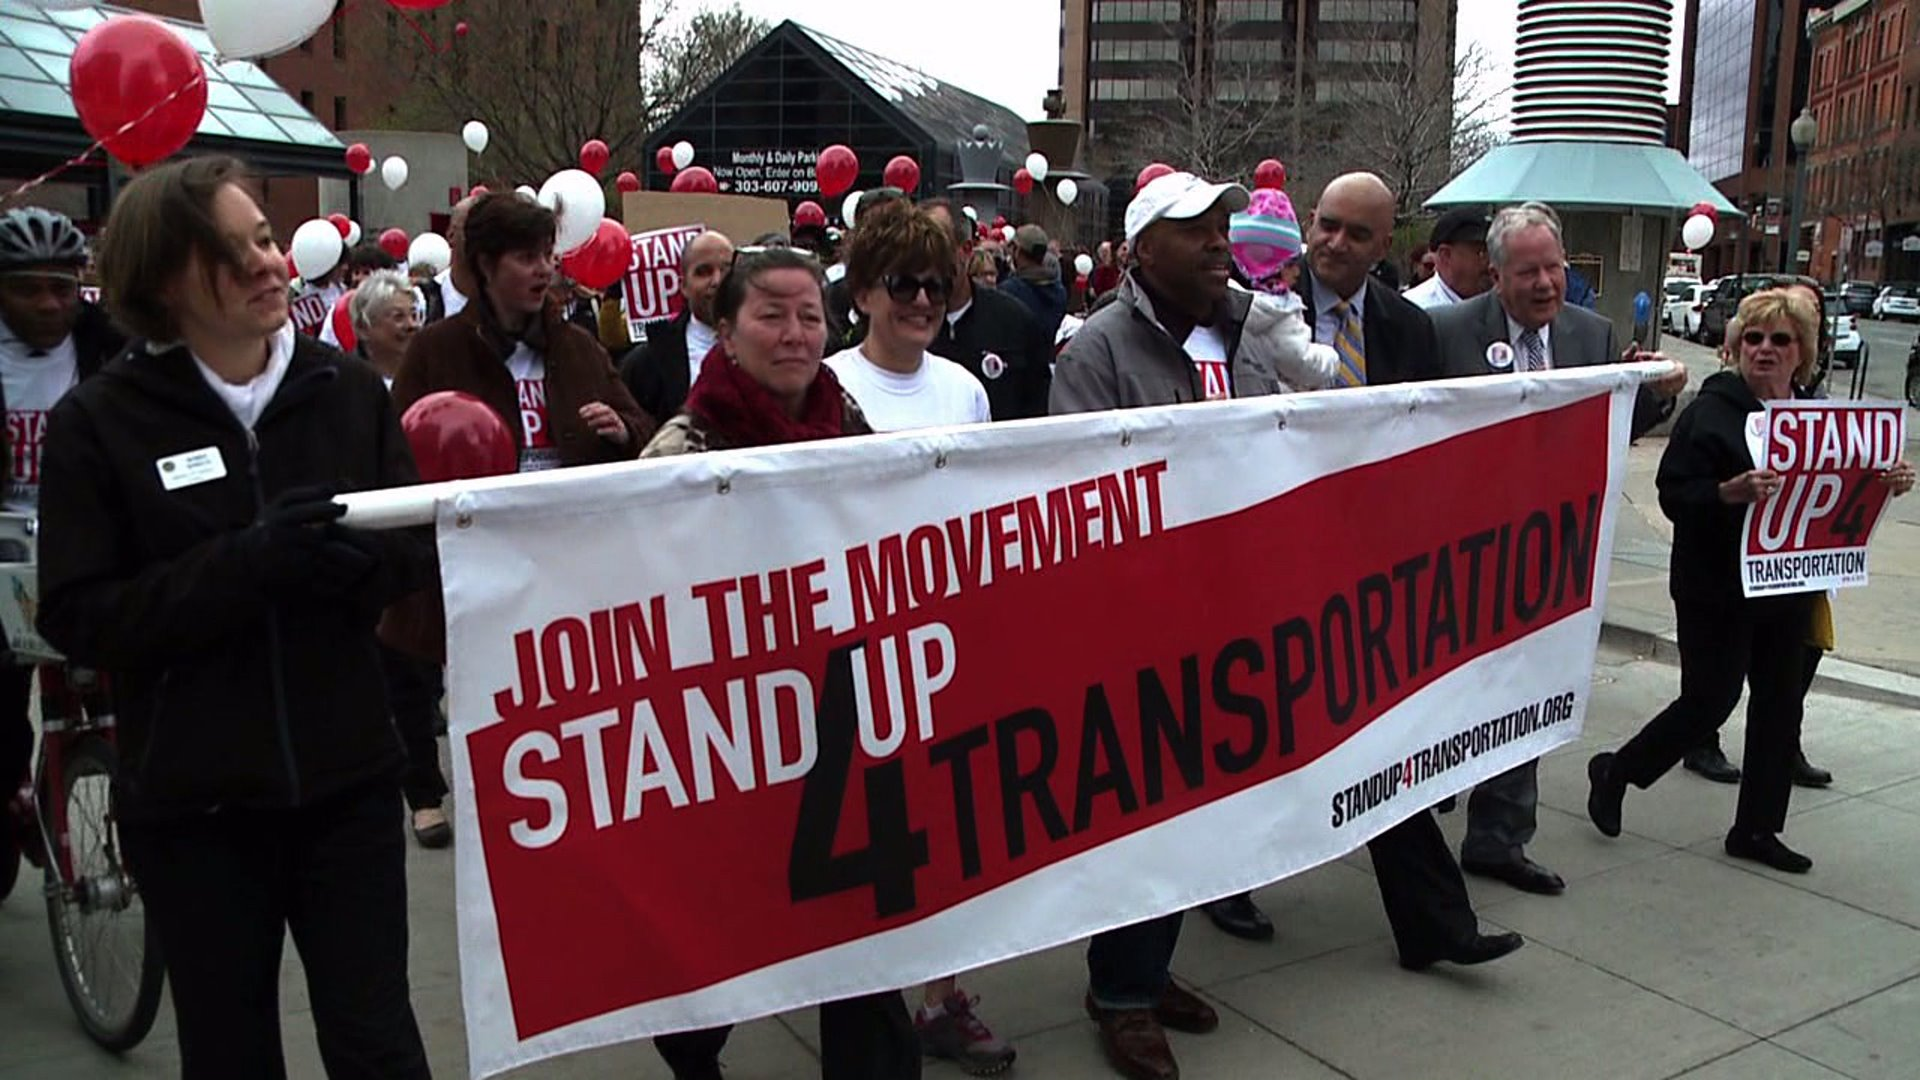 Stand Up for Transportation march in downtown Denver